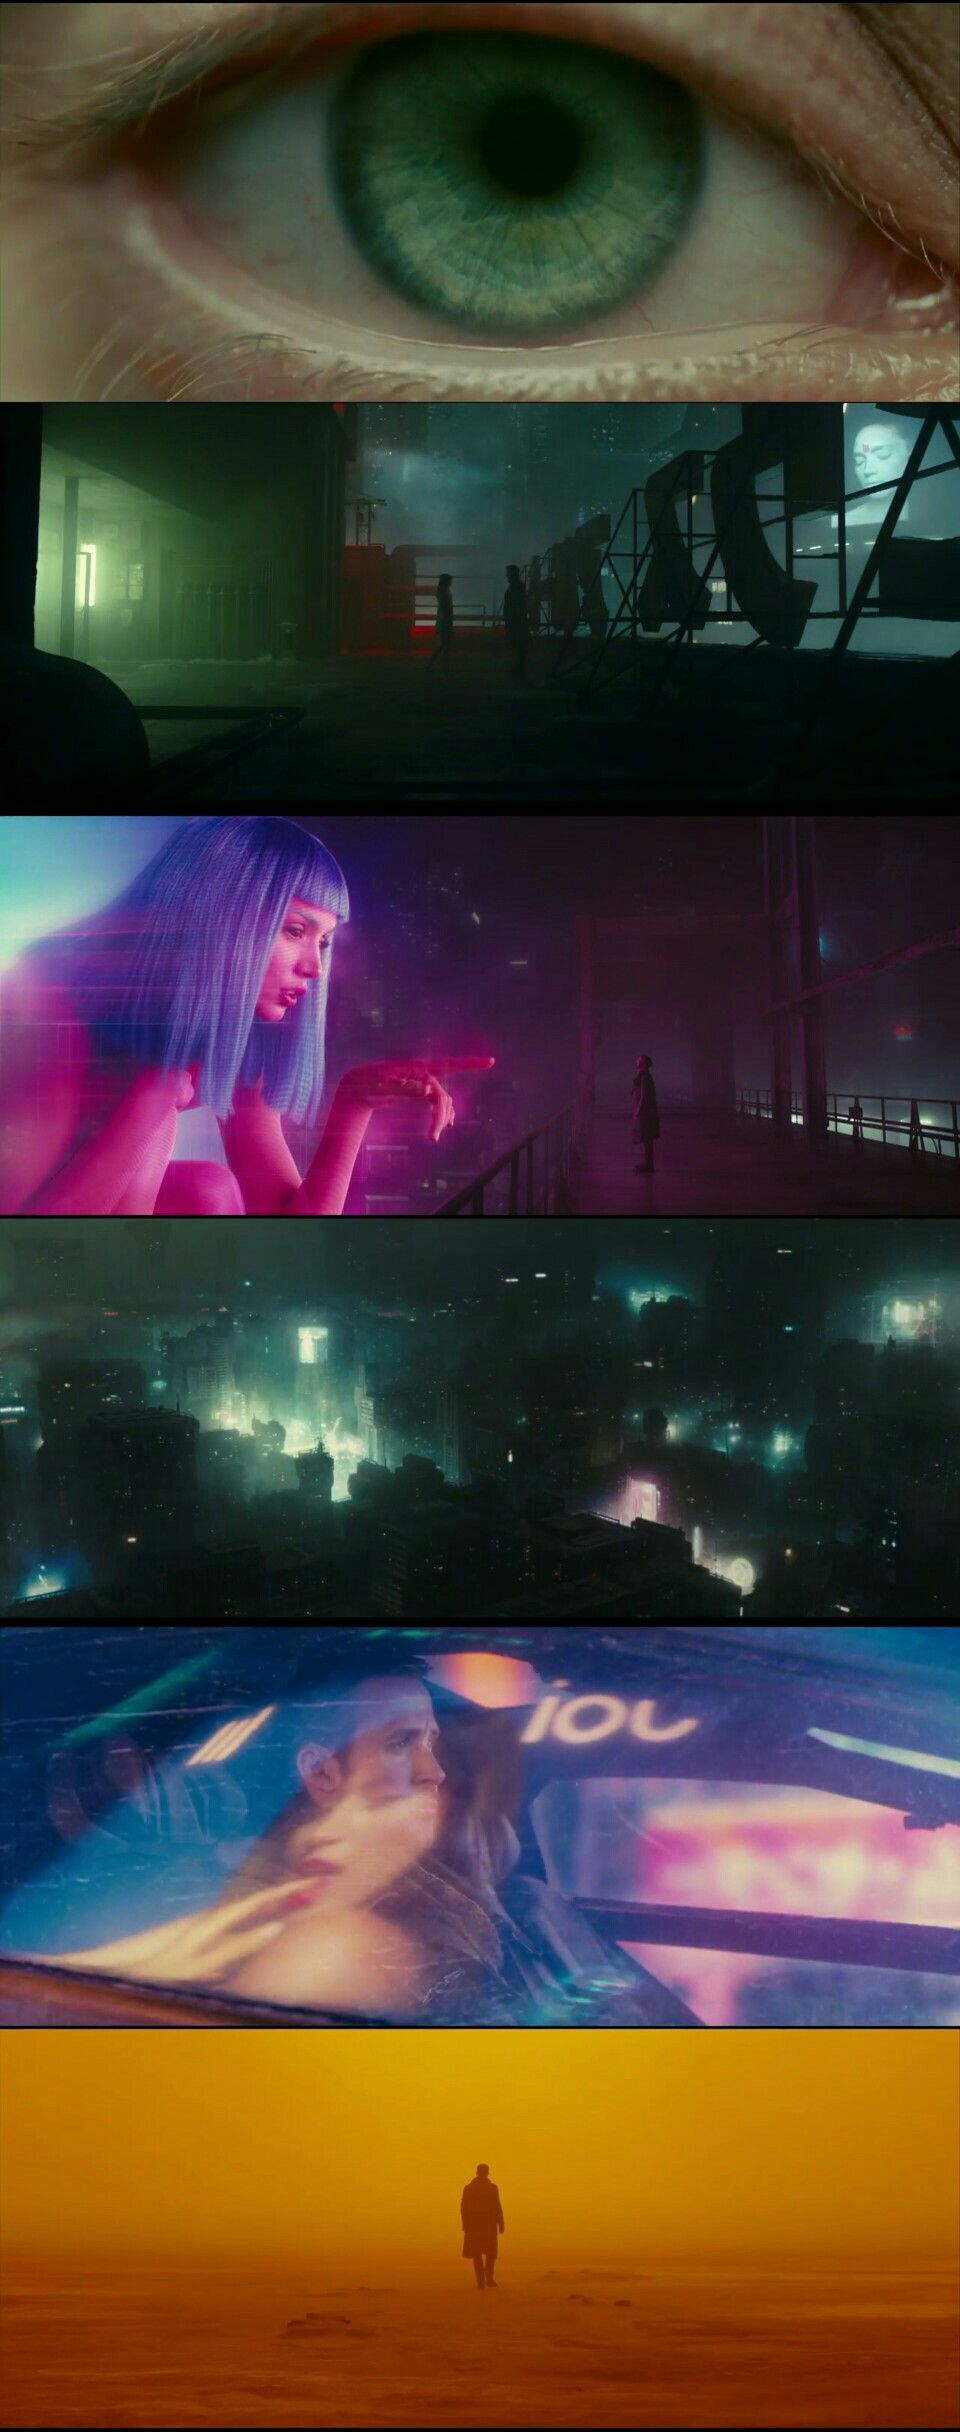 Blade Runner Futuristic Colour Palette I Like These - These colour palettes inspired by famous movie scenes are beautiful